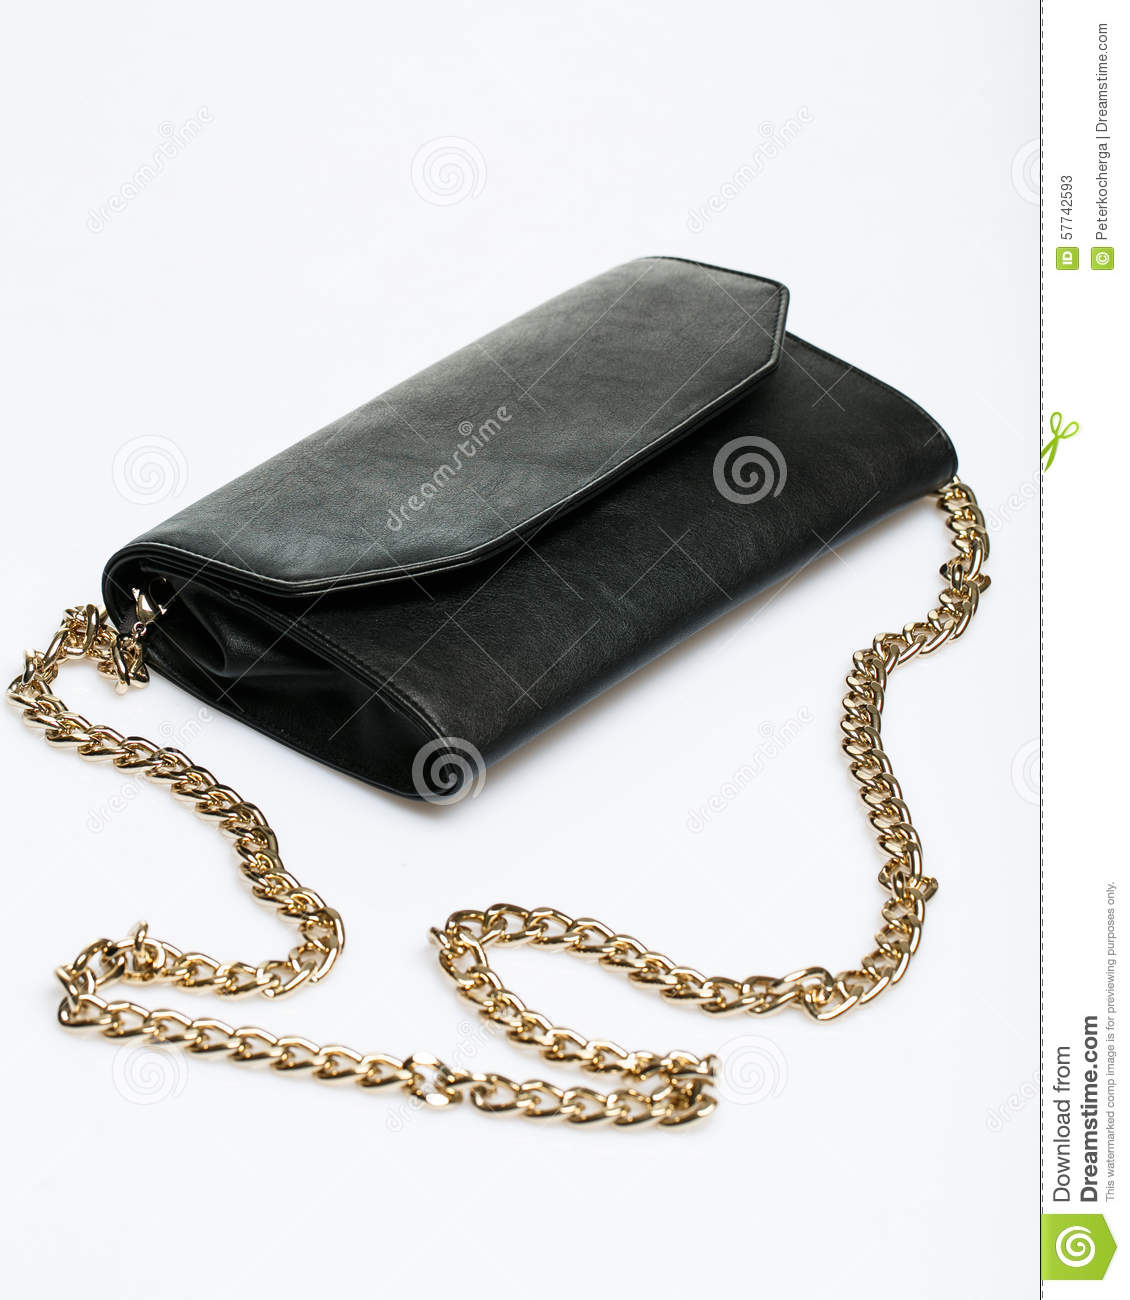 The Little Black Handbag Stock Photo - Image: 57742593